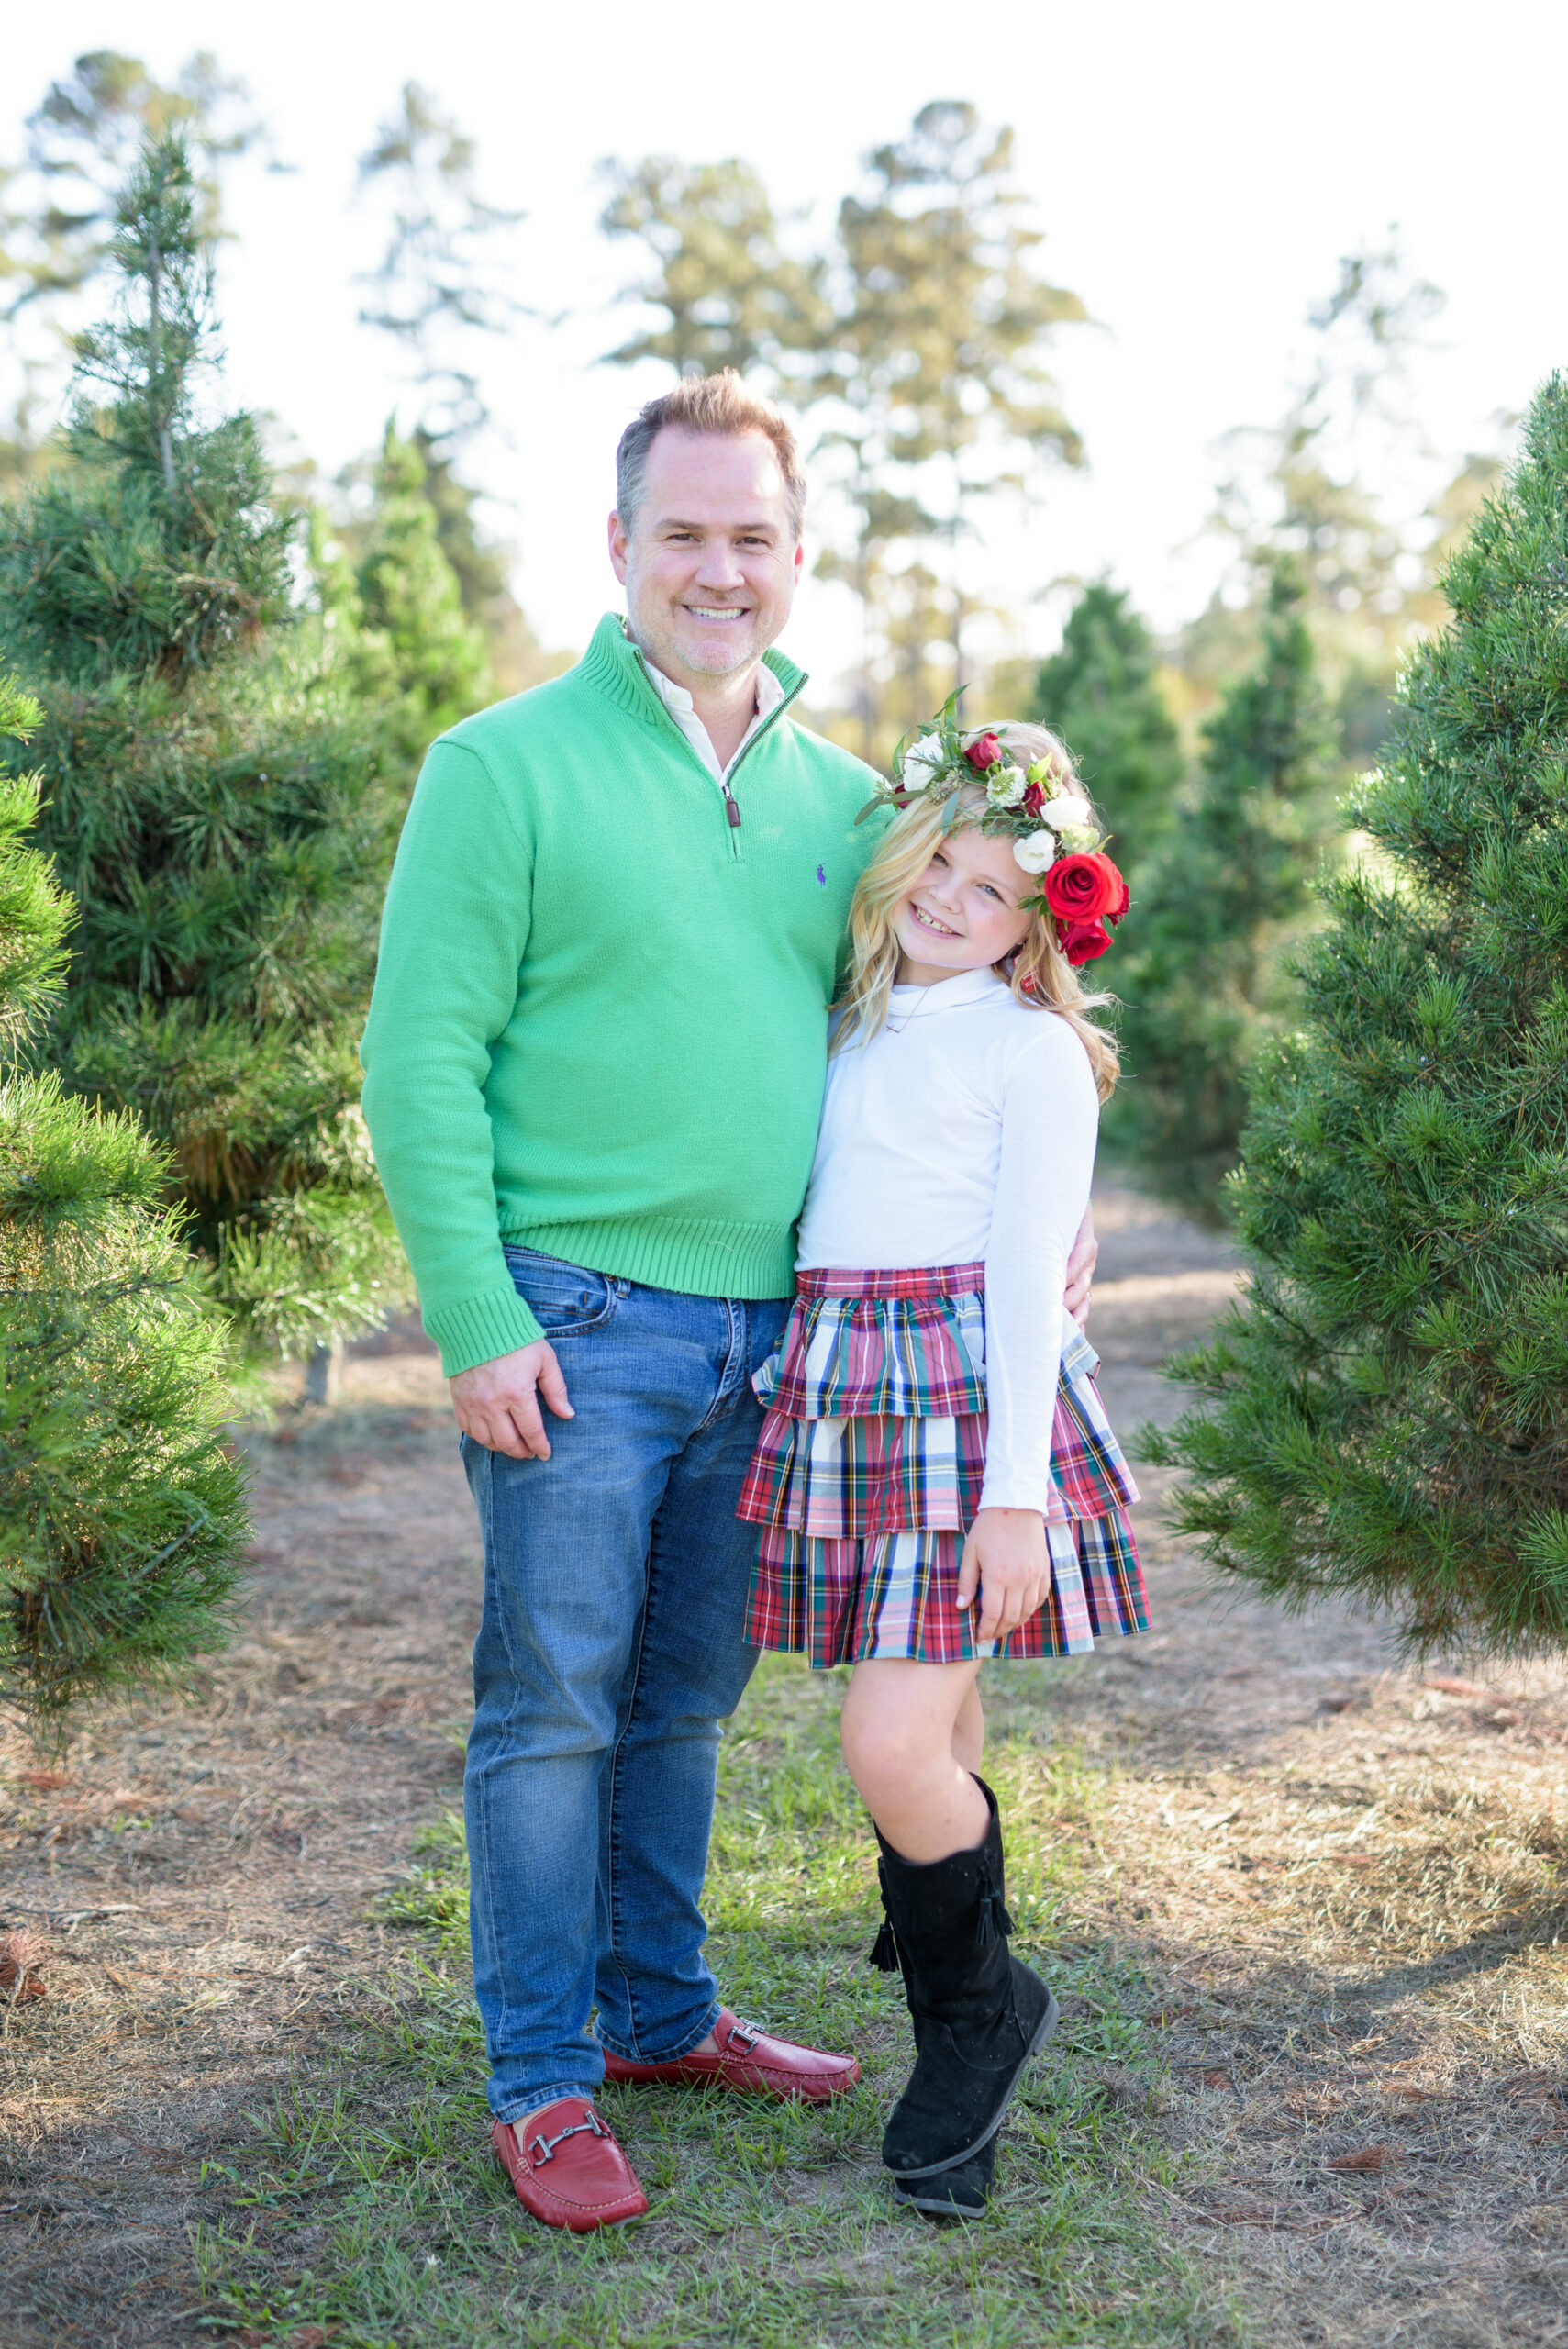 Christmas Tree Farm Photos by popular Houston lifestyle blog, Fancy Ashley: image of a dad and his daughter standing together in a row of pine trees and wearing a green pullover sweater, white long sleeve turtleneck shirt, plaid ruffle tier skirt, floral crown and black suede boots.